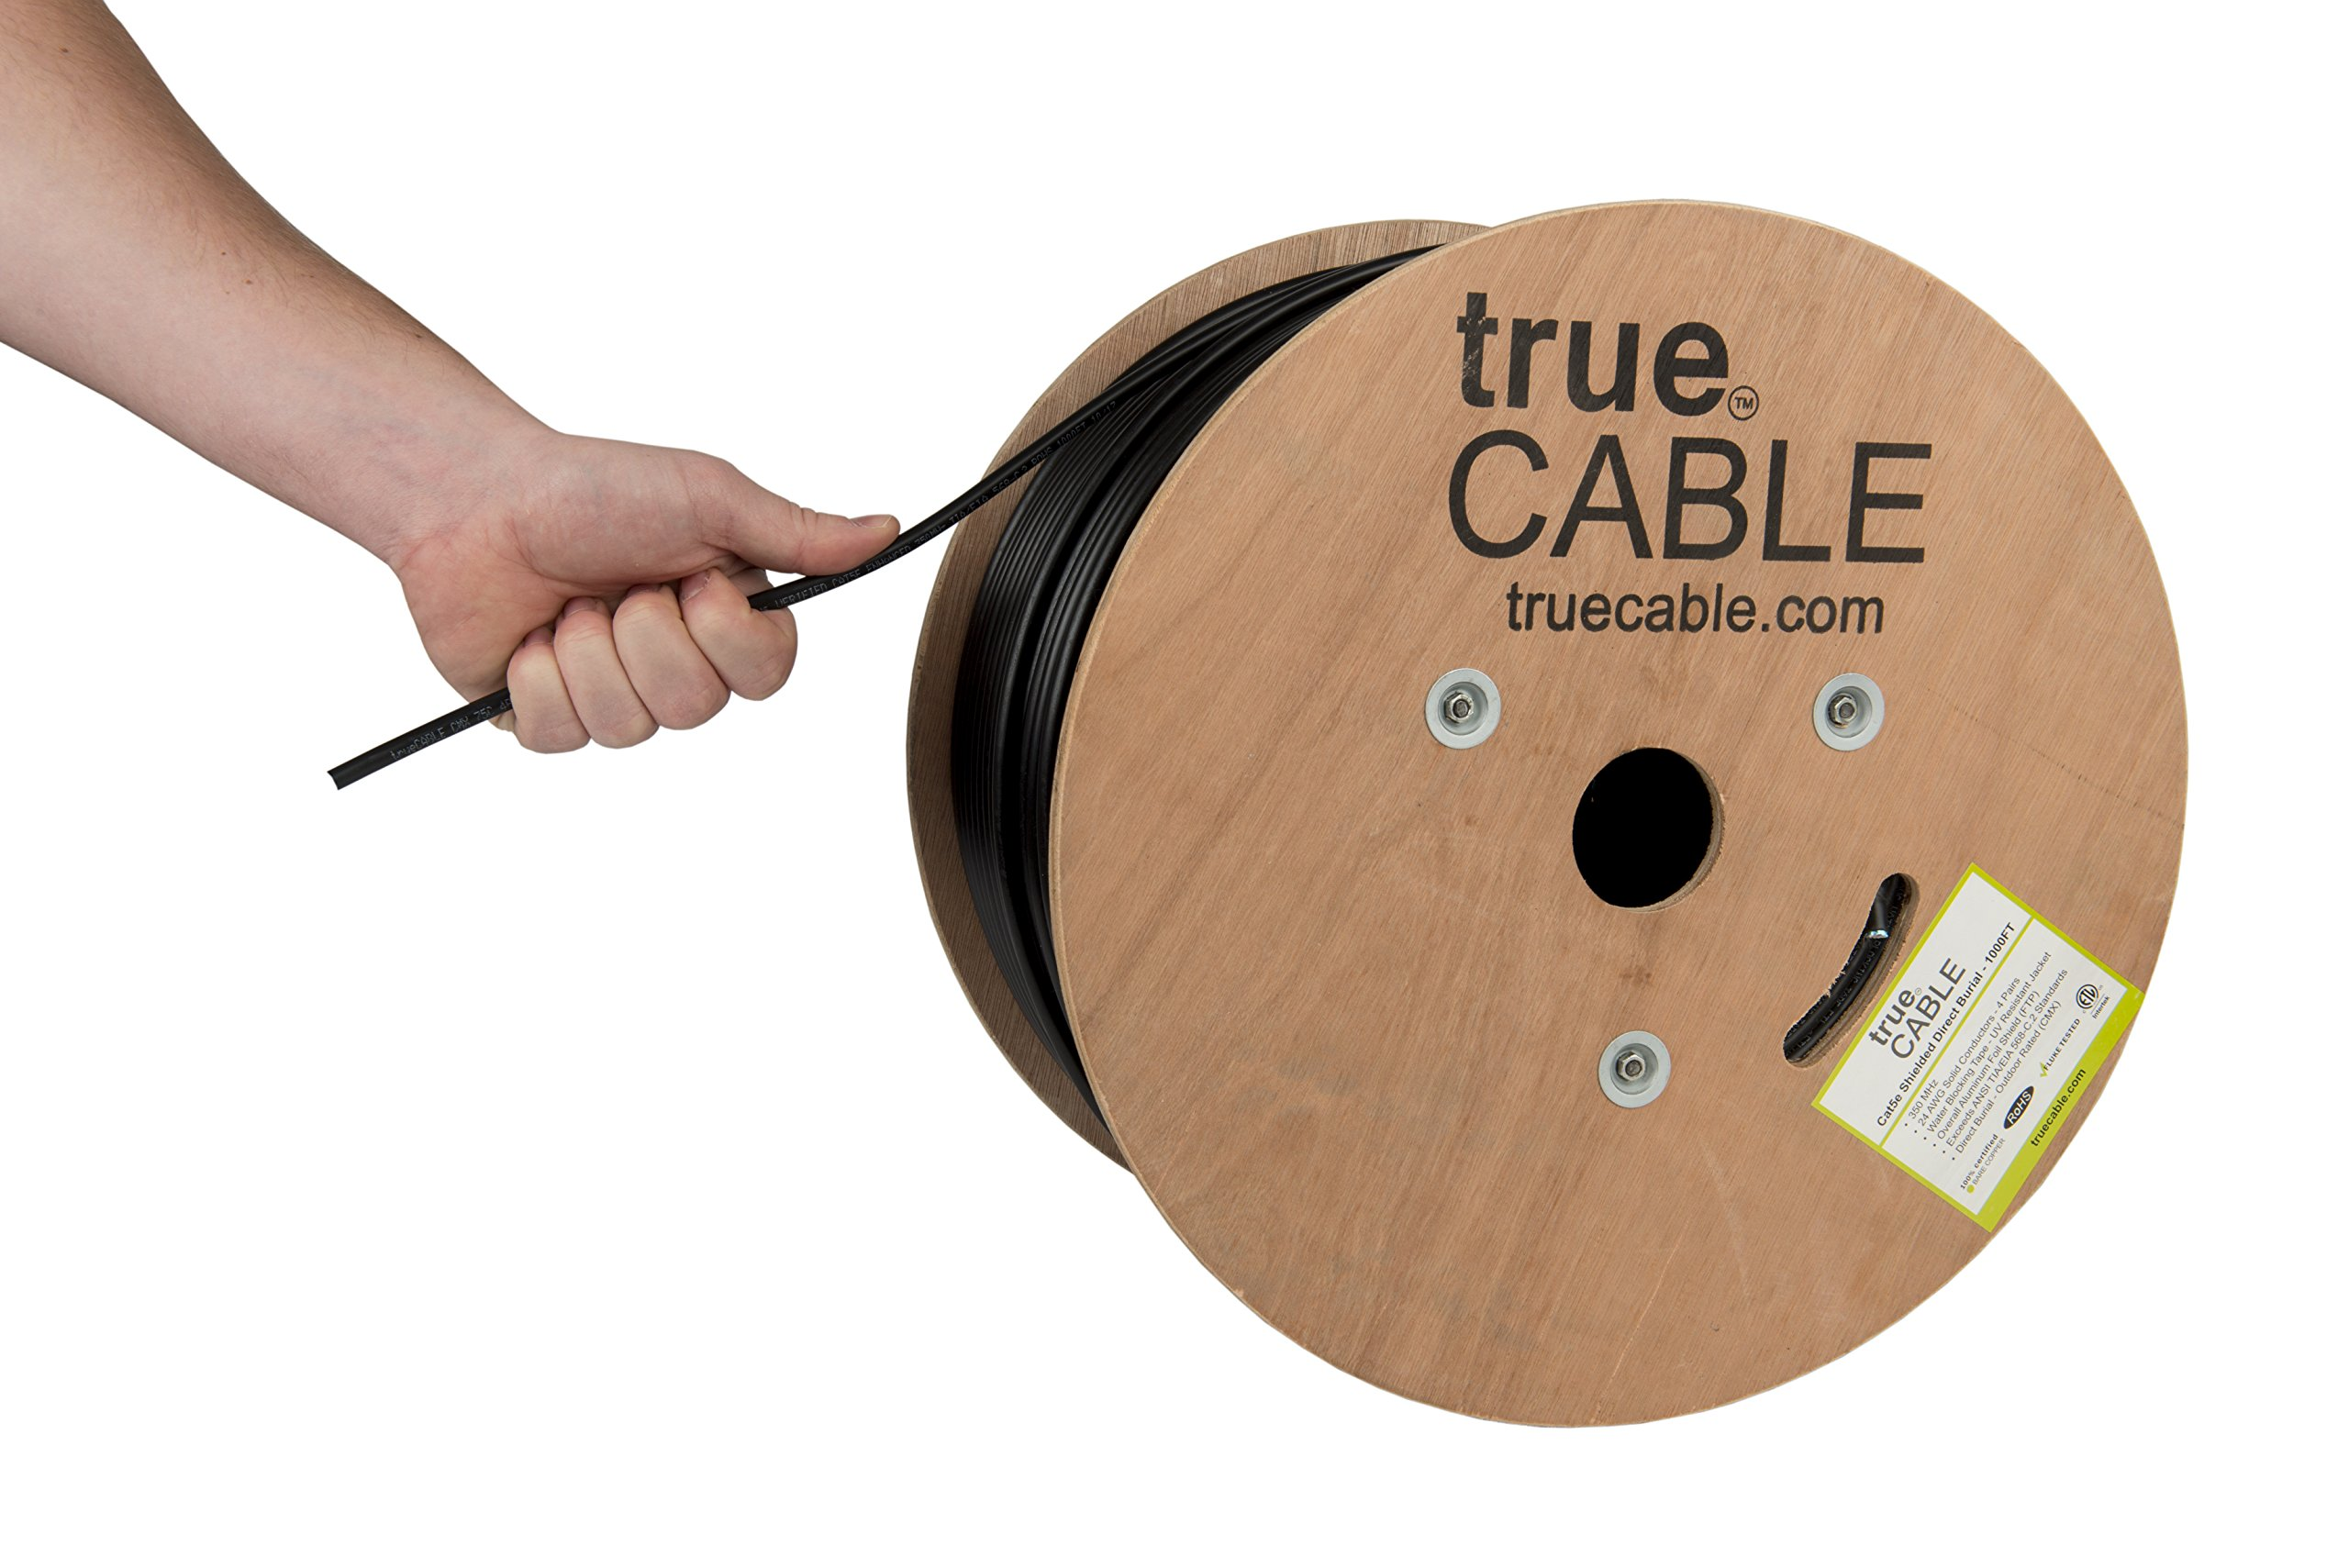 Cat5e Outdoor, Shielded - FTP, 1000ft, Waterproof Direct Burial Rated CMX, Solid Bare Copper Bulk Ethernet Cable, 350MHz, ETL Listed, Black, trueCABLE by trueCABLE (Image #1)